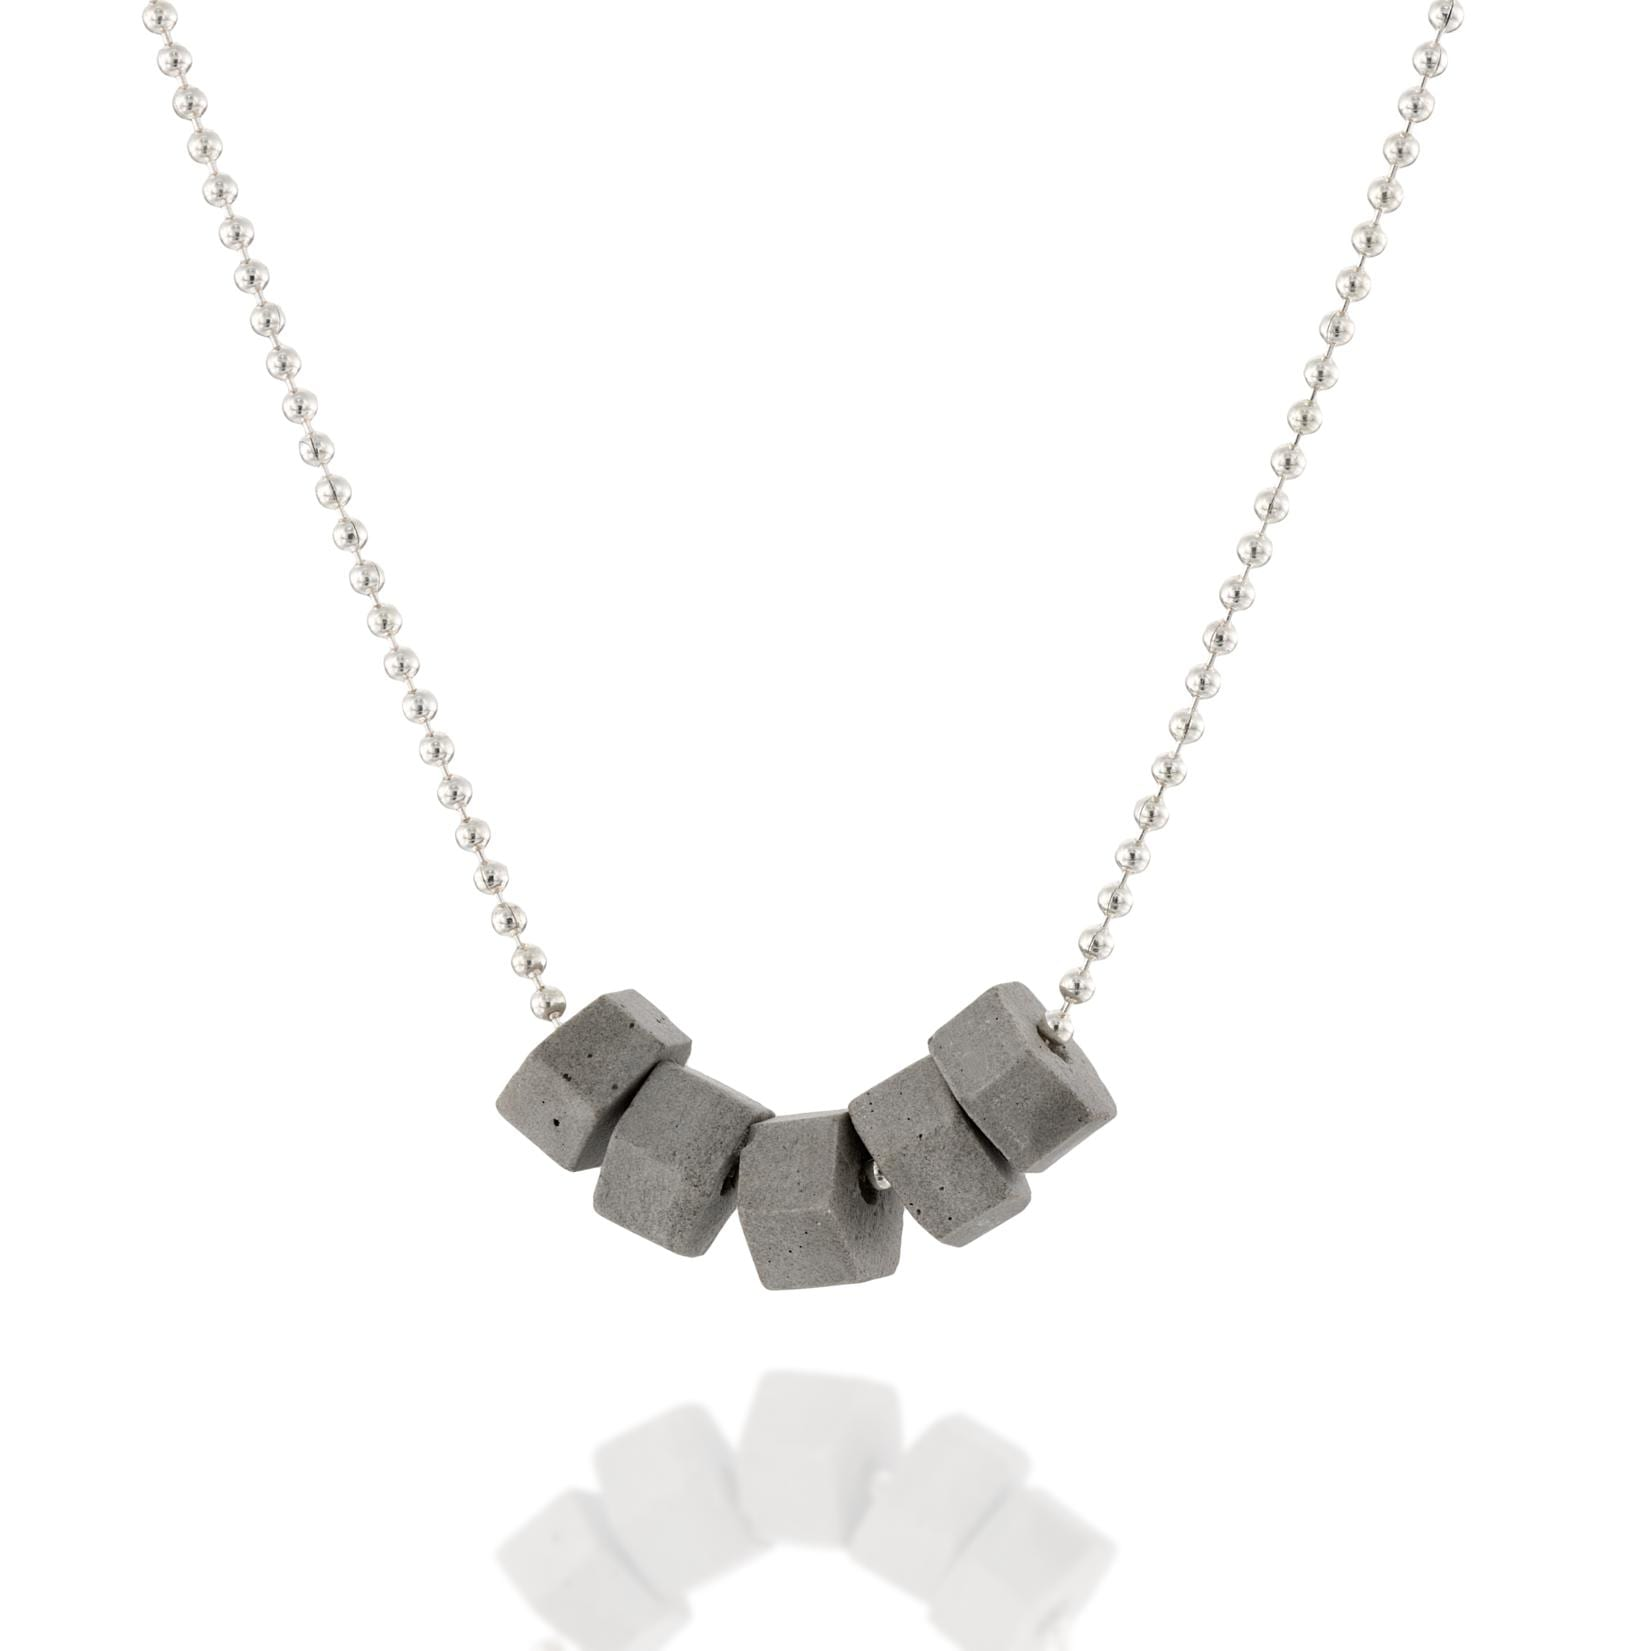 Tiny Concrete Hexagons Necklace-Silver-BAARAJewelry-high res